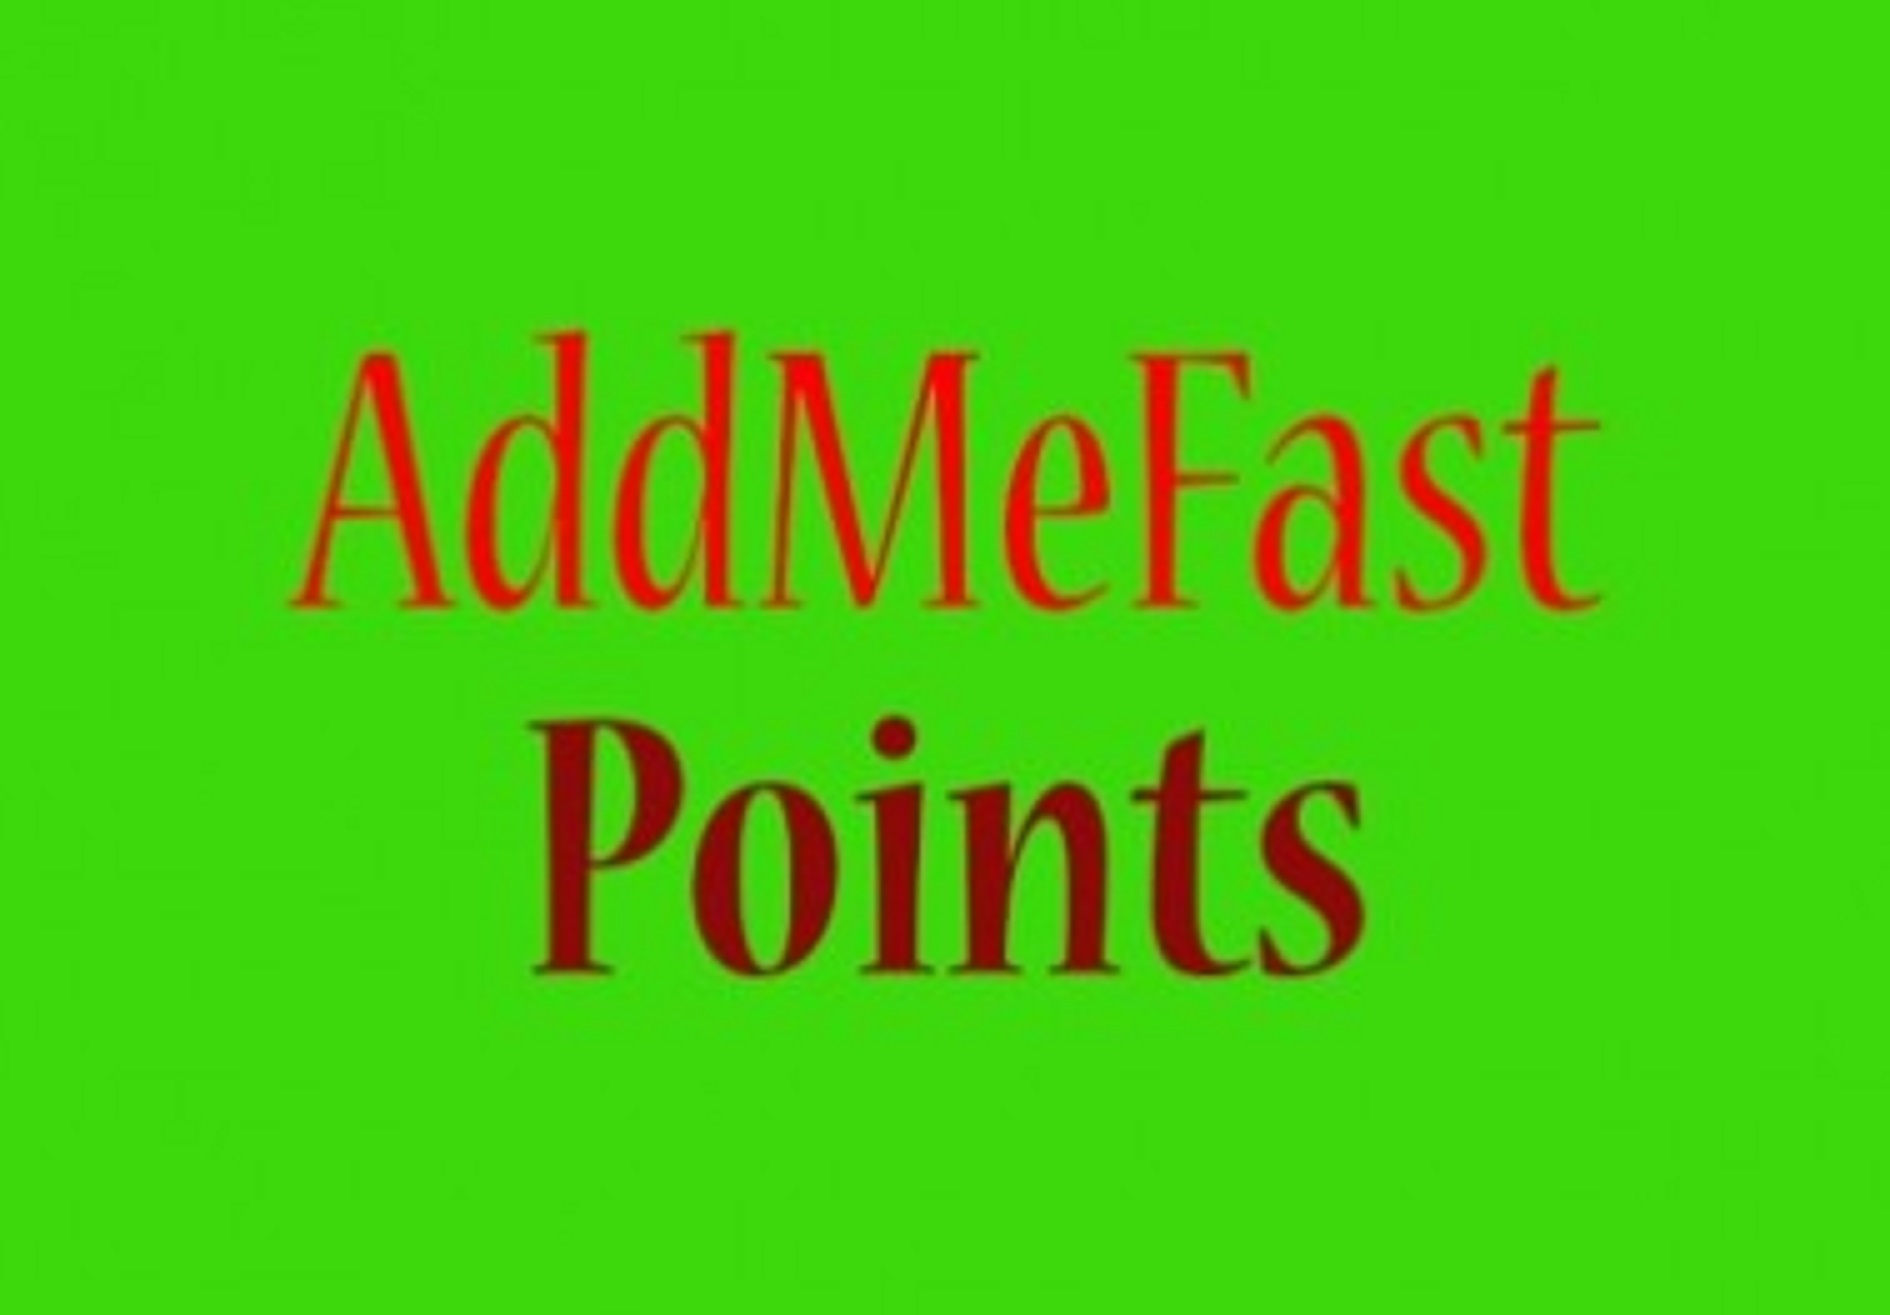 Give 22,000 point addmefast